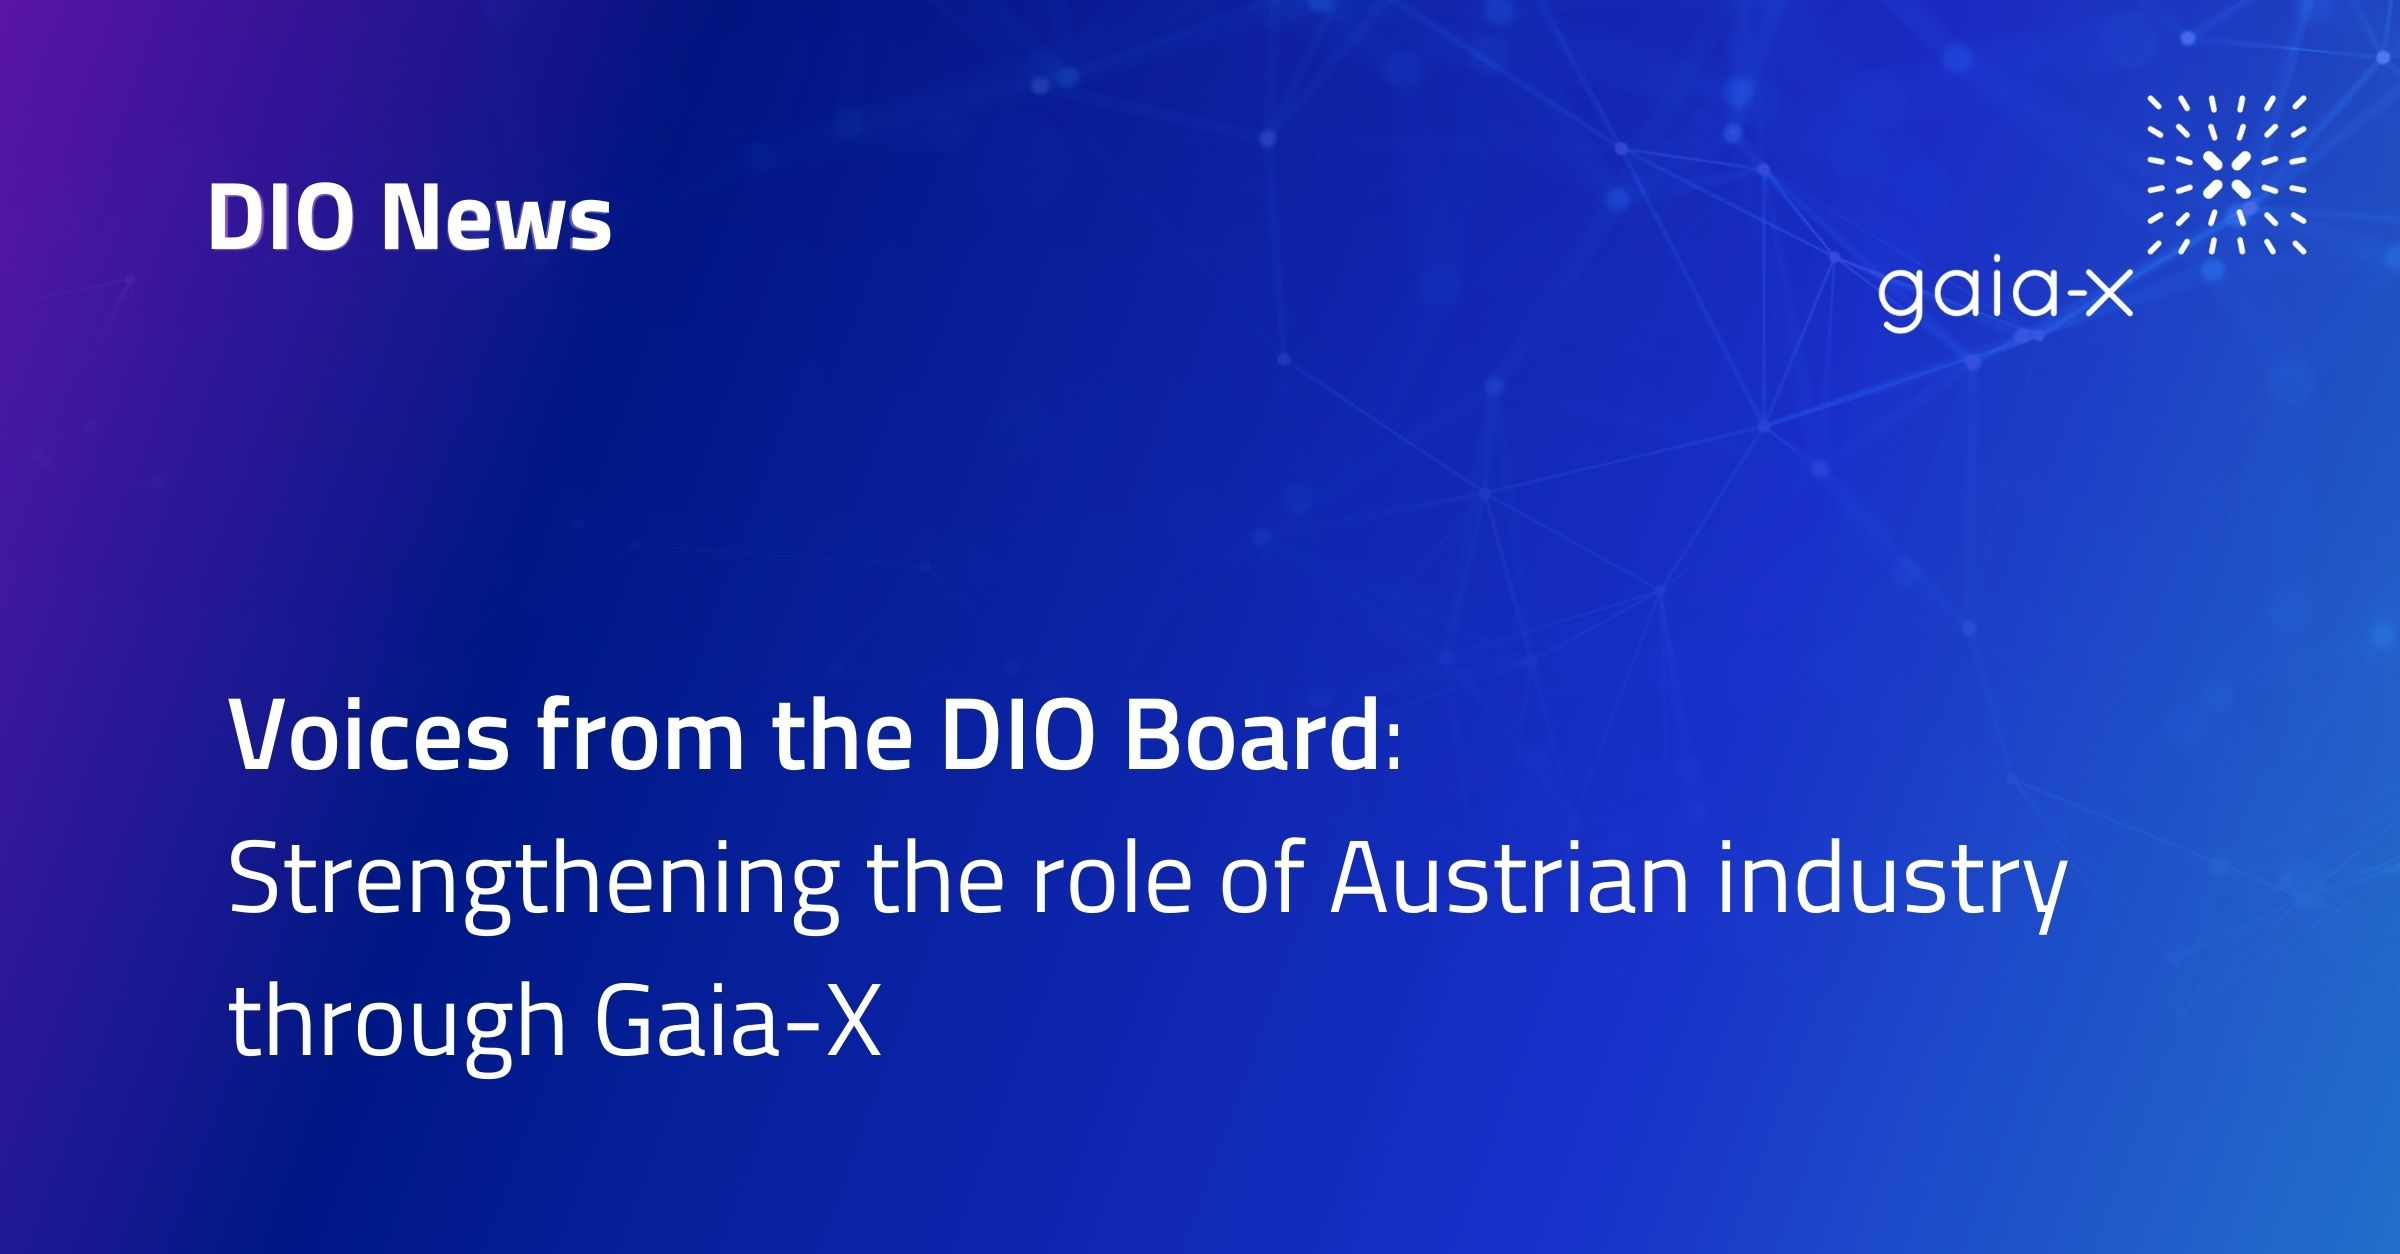 Voices from the DIO Board Strengthening the role of Austrian industry through Gaia-X